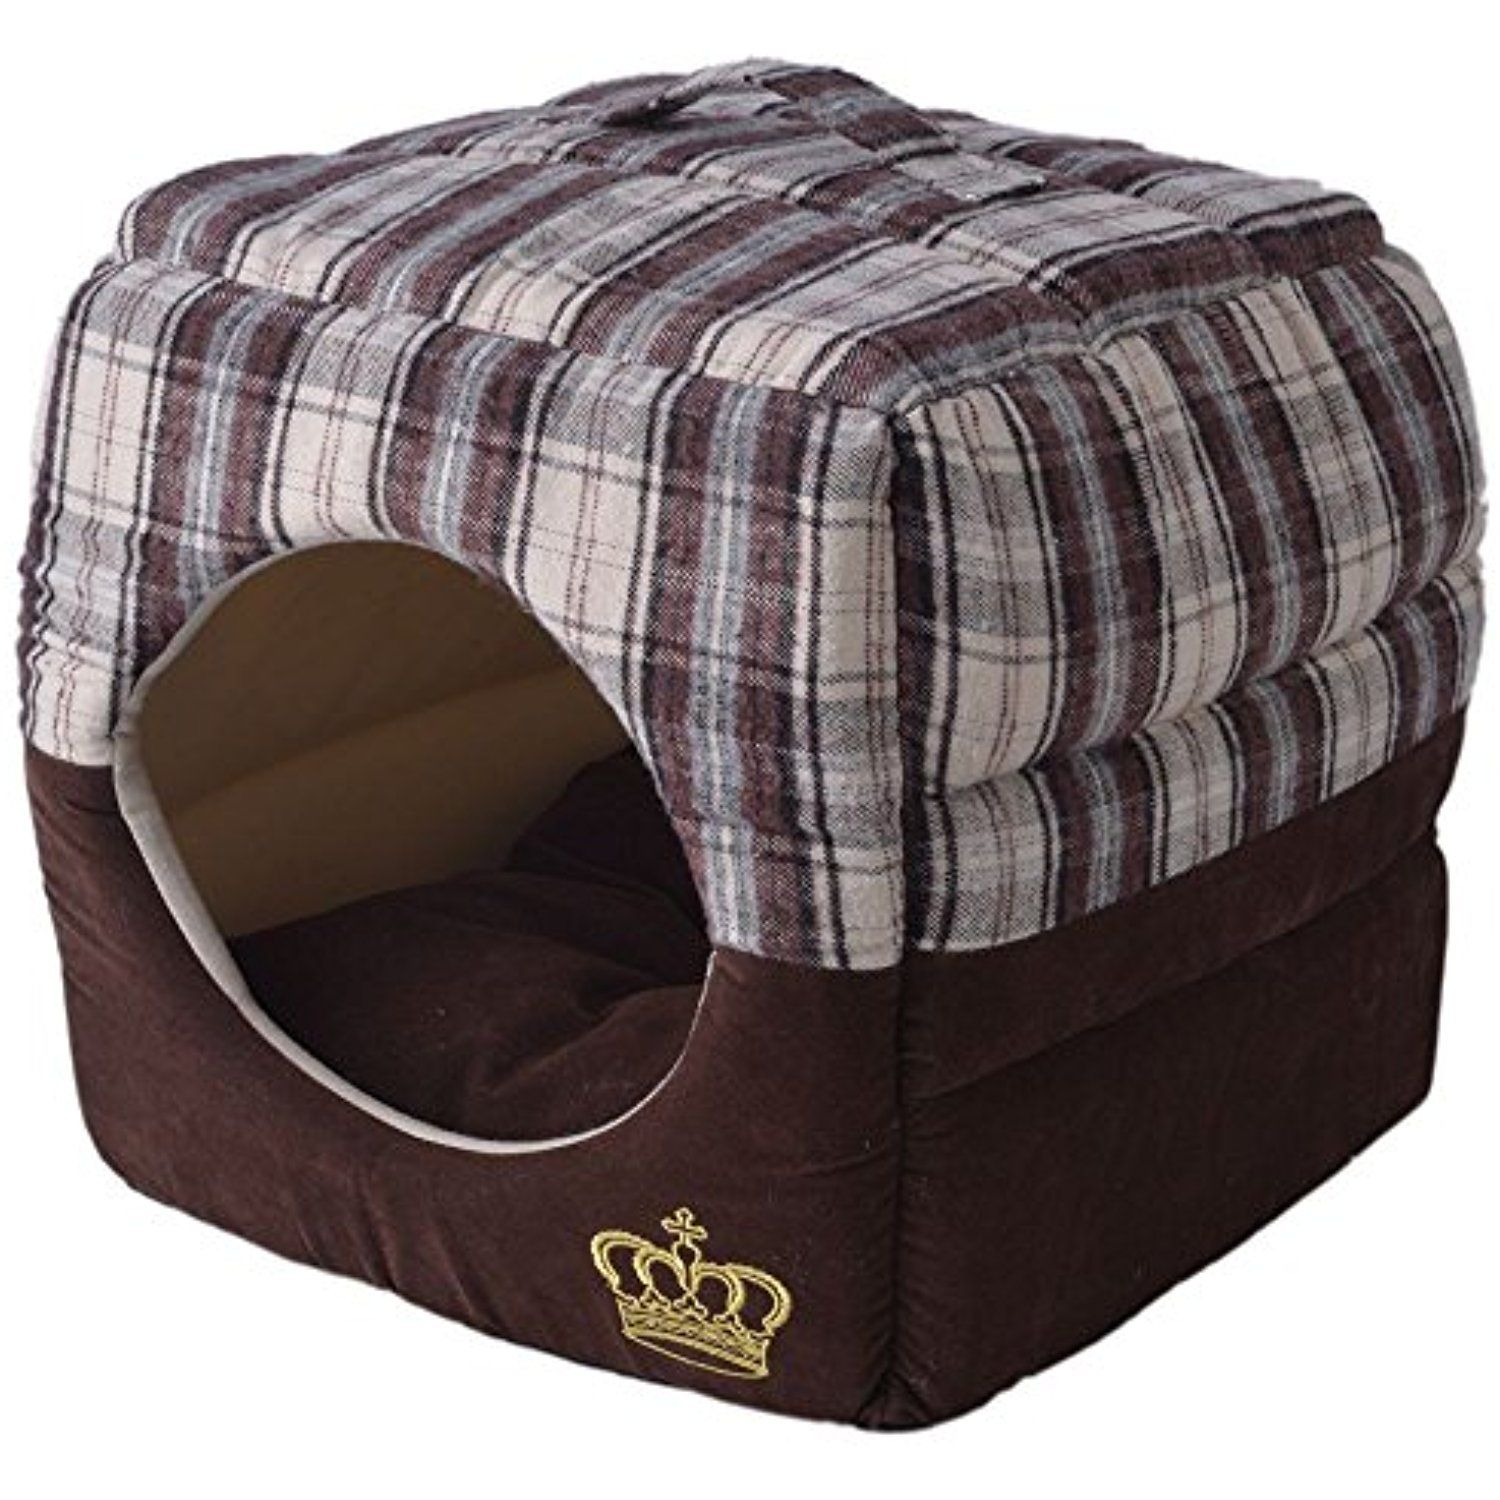 Soft Plaid Cat Cube House 2 In 1 Deluxe Pet Bed For Small Dogs Classic Fashion Royal Crown With Thick Soft Cotton Fabric Br Cat Cube Dog Bed Large Dog Crate